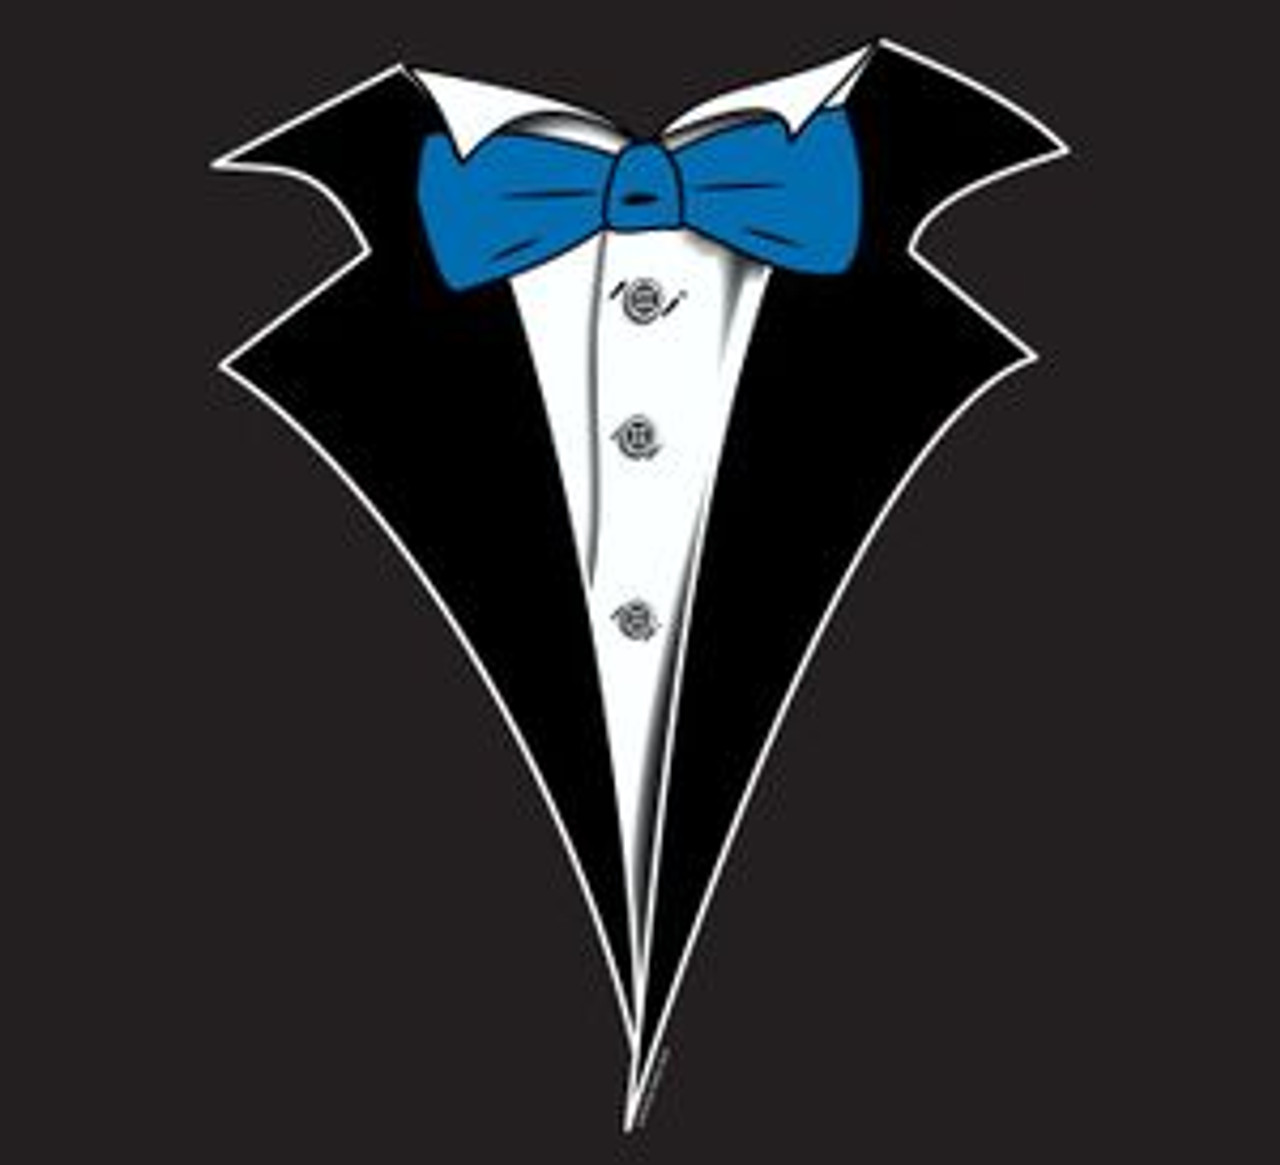 Kids Tuxedo T Shirt In Black With Blue Tie No Carnation Shop